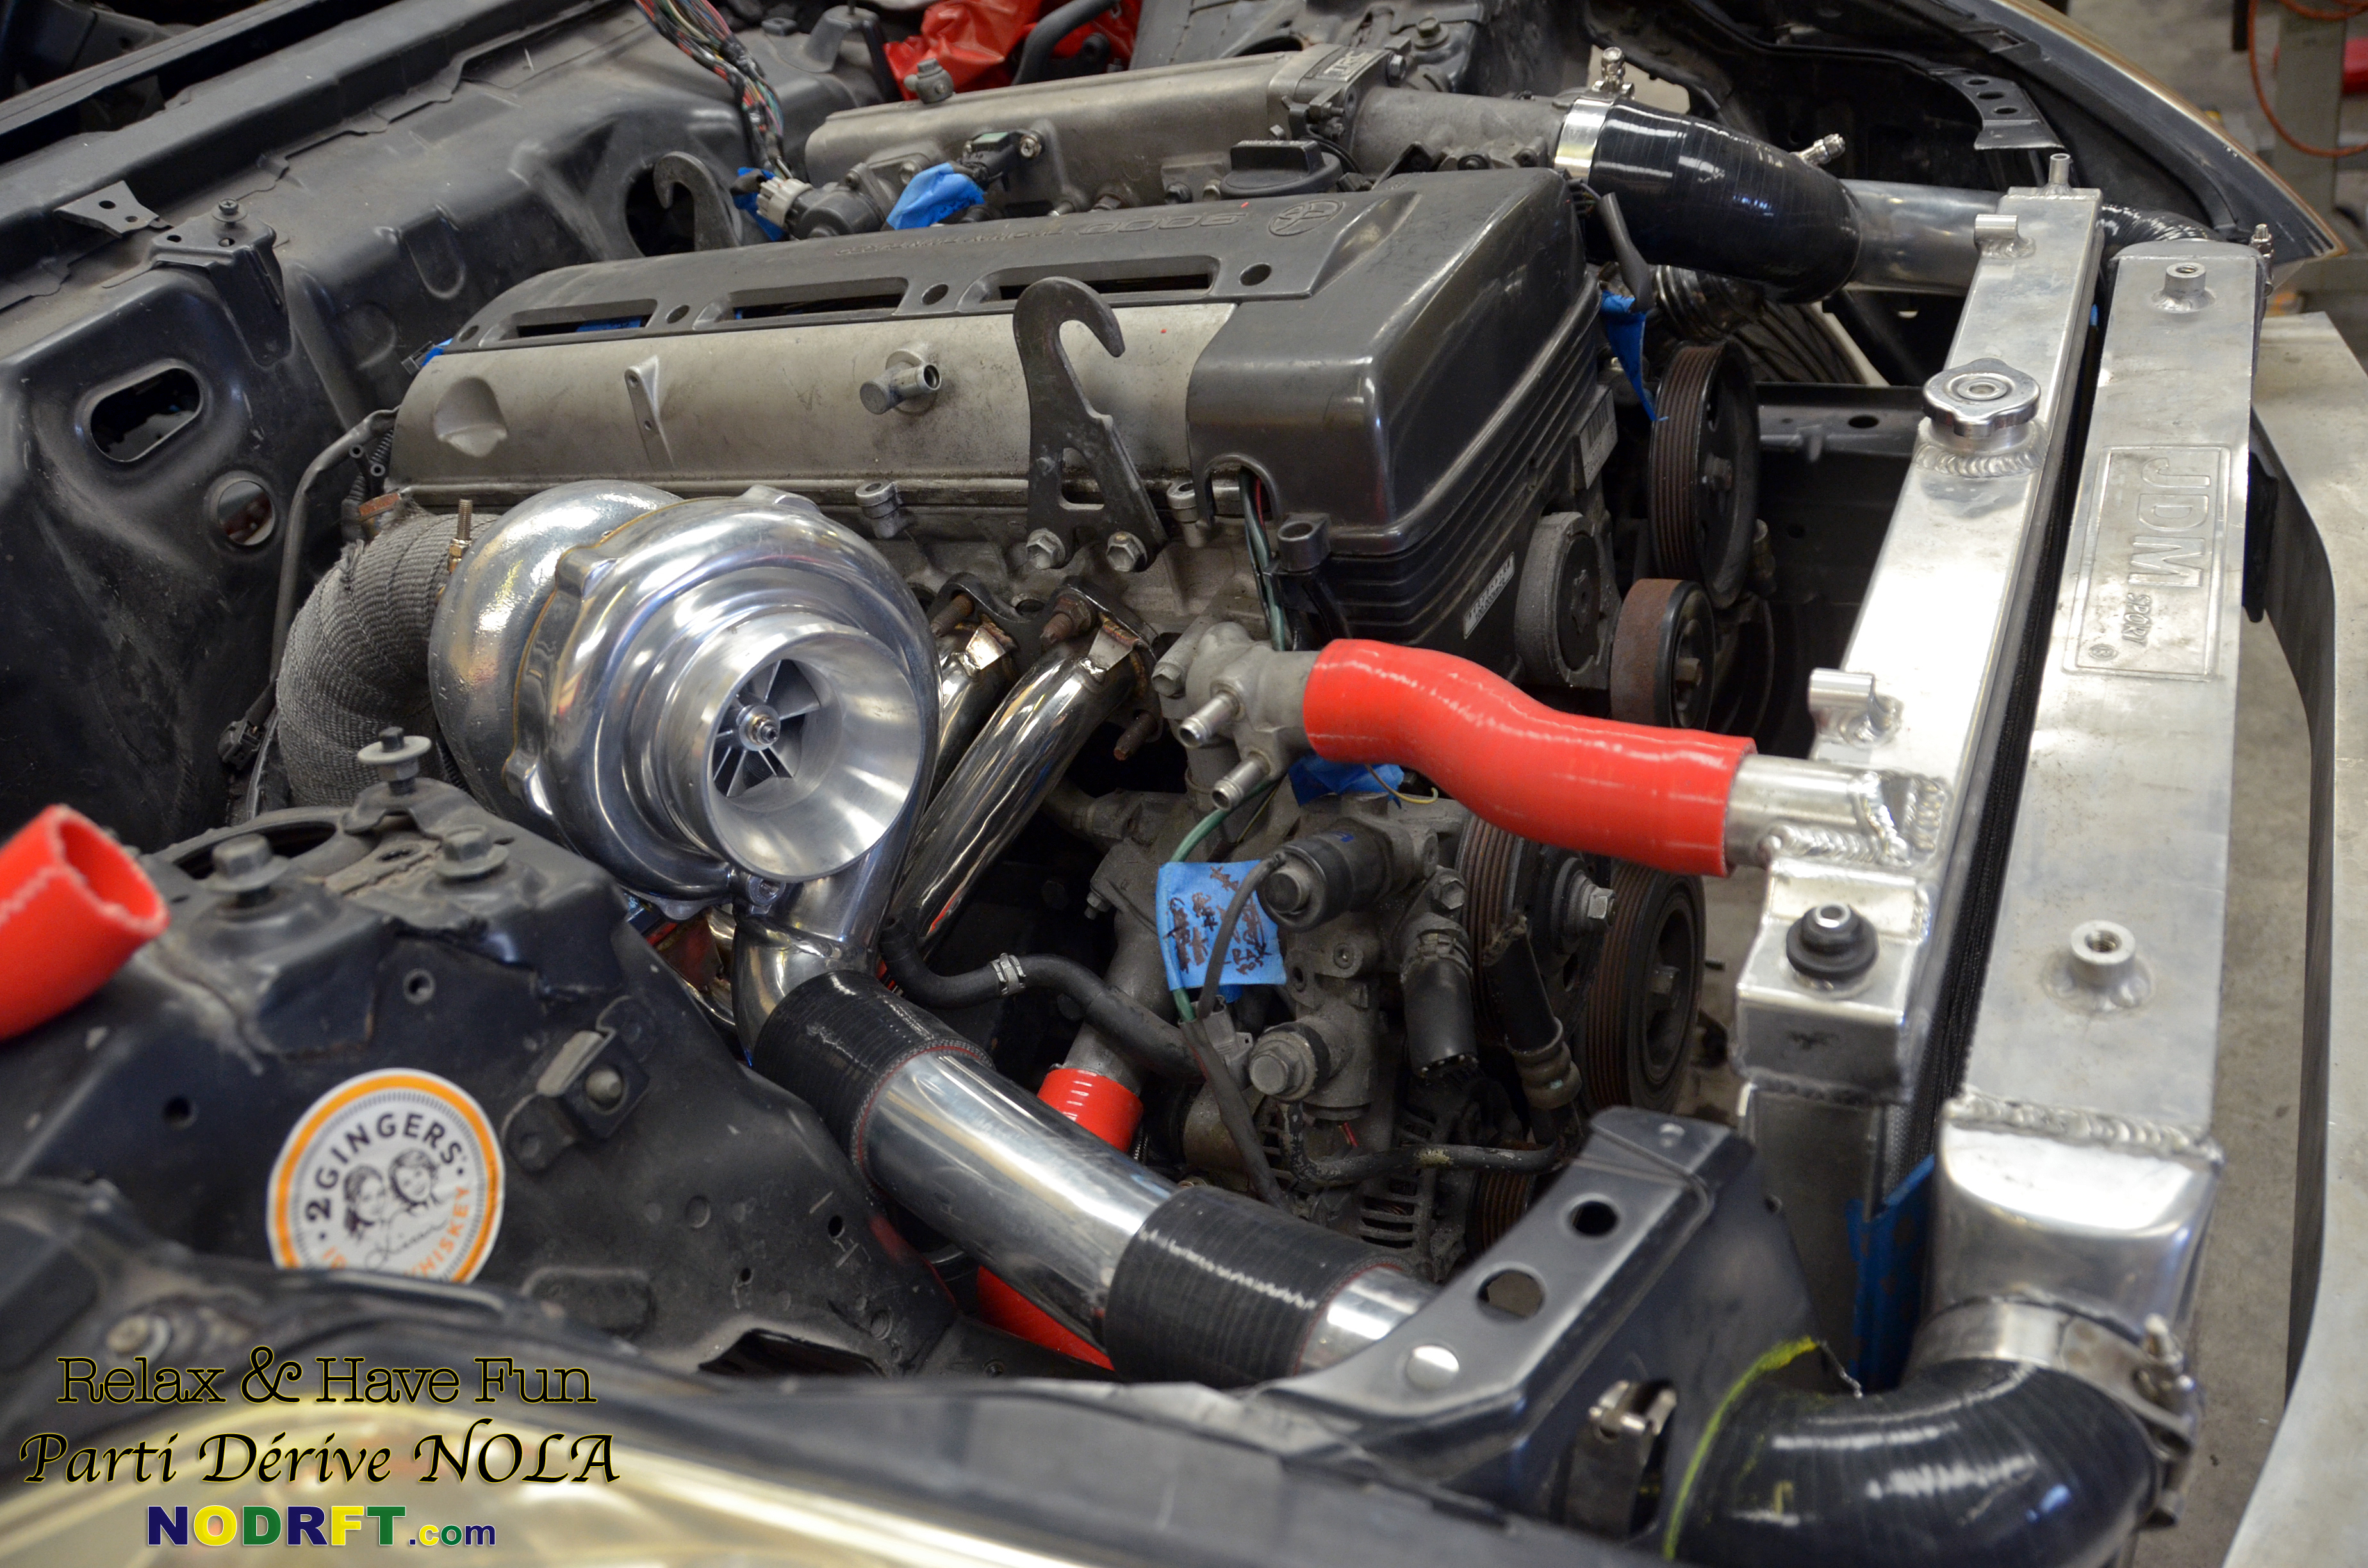 2jzZ33 – Turbo, HMIC, Charge piping, Rad mock up'